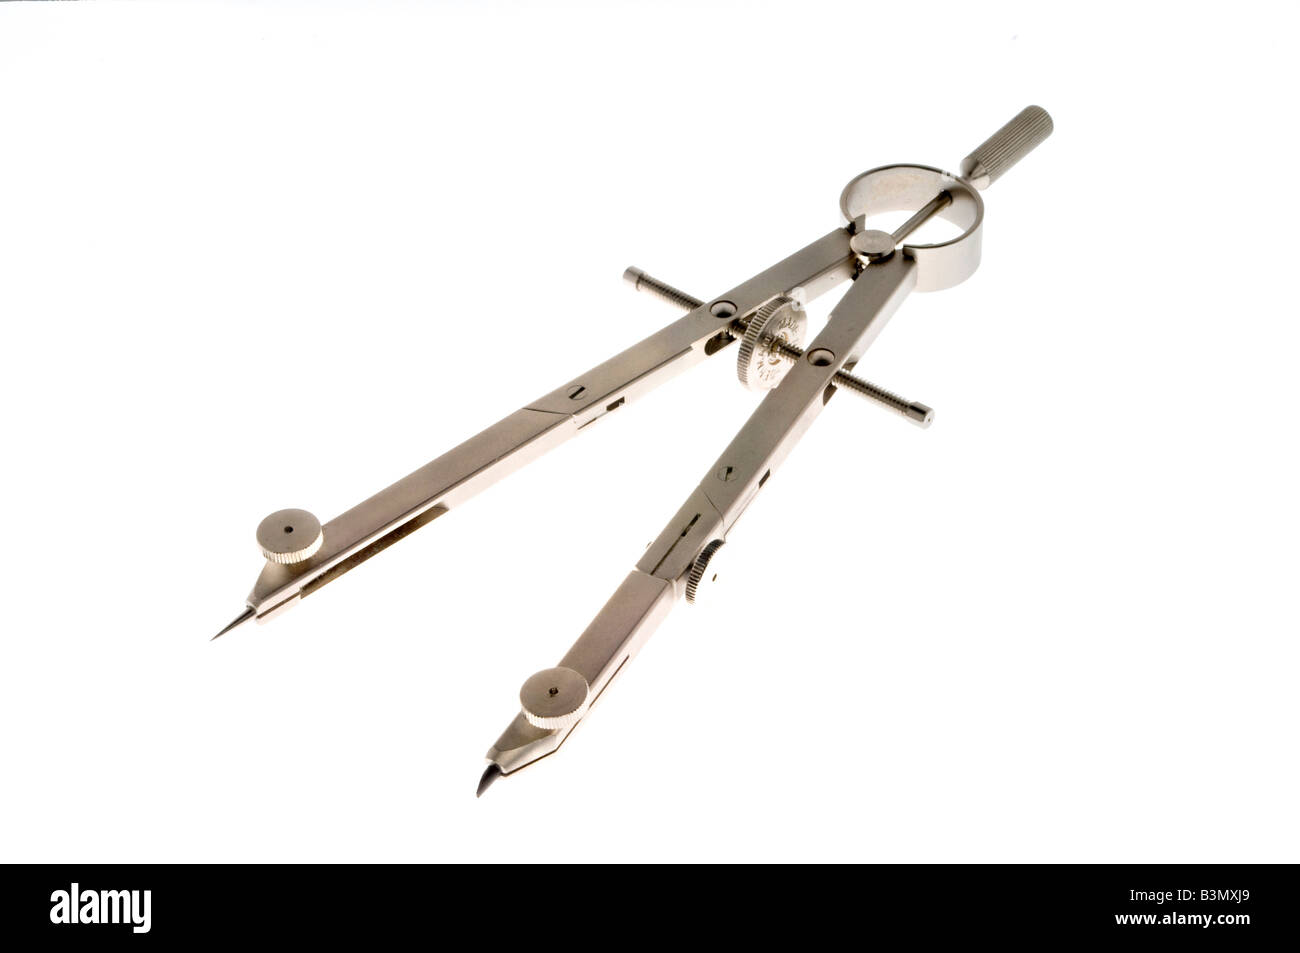 Mechanical compass on white - Stock Image